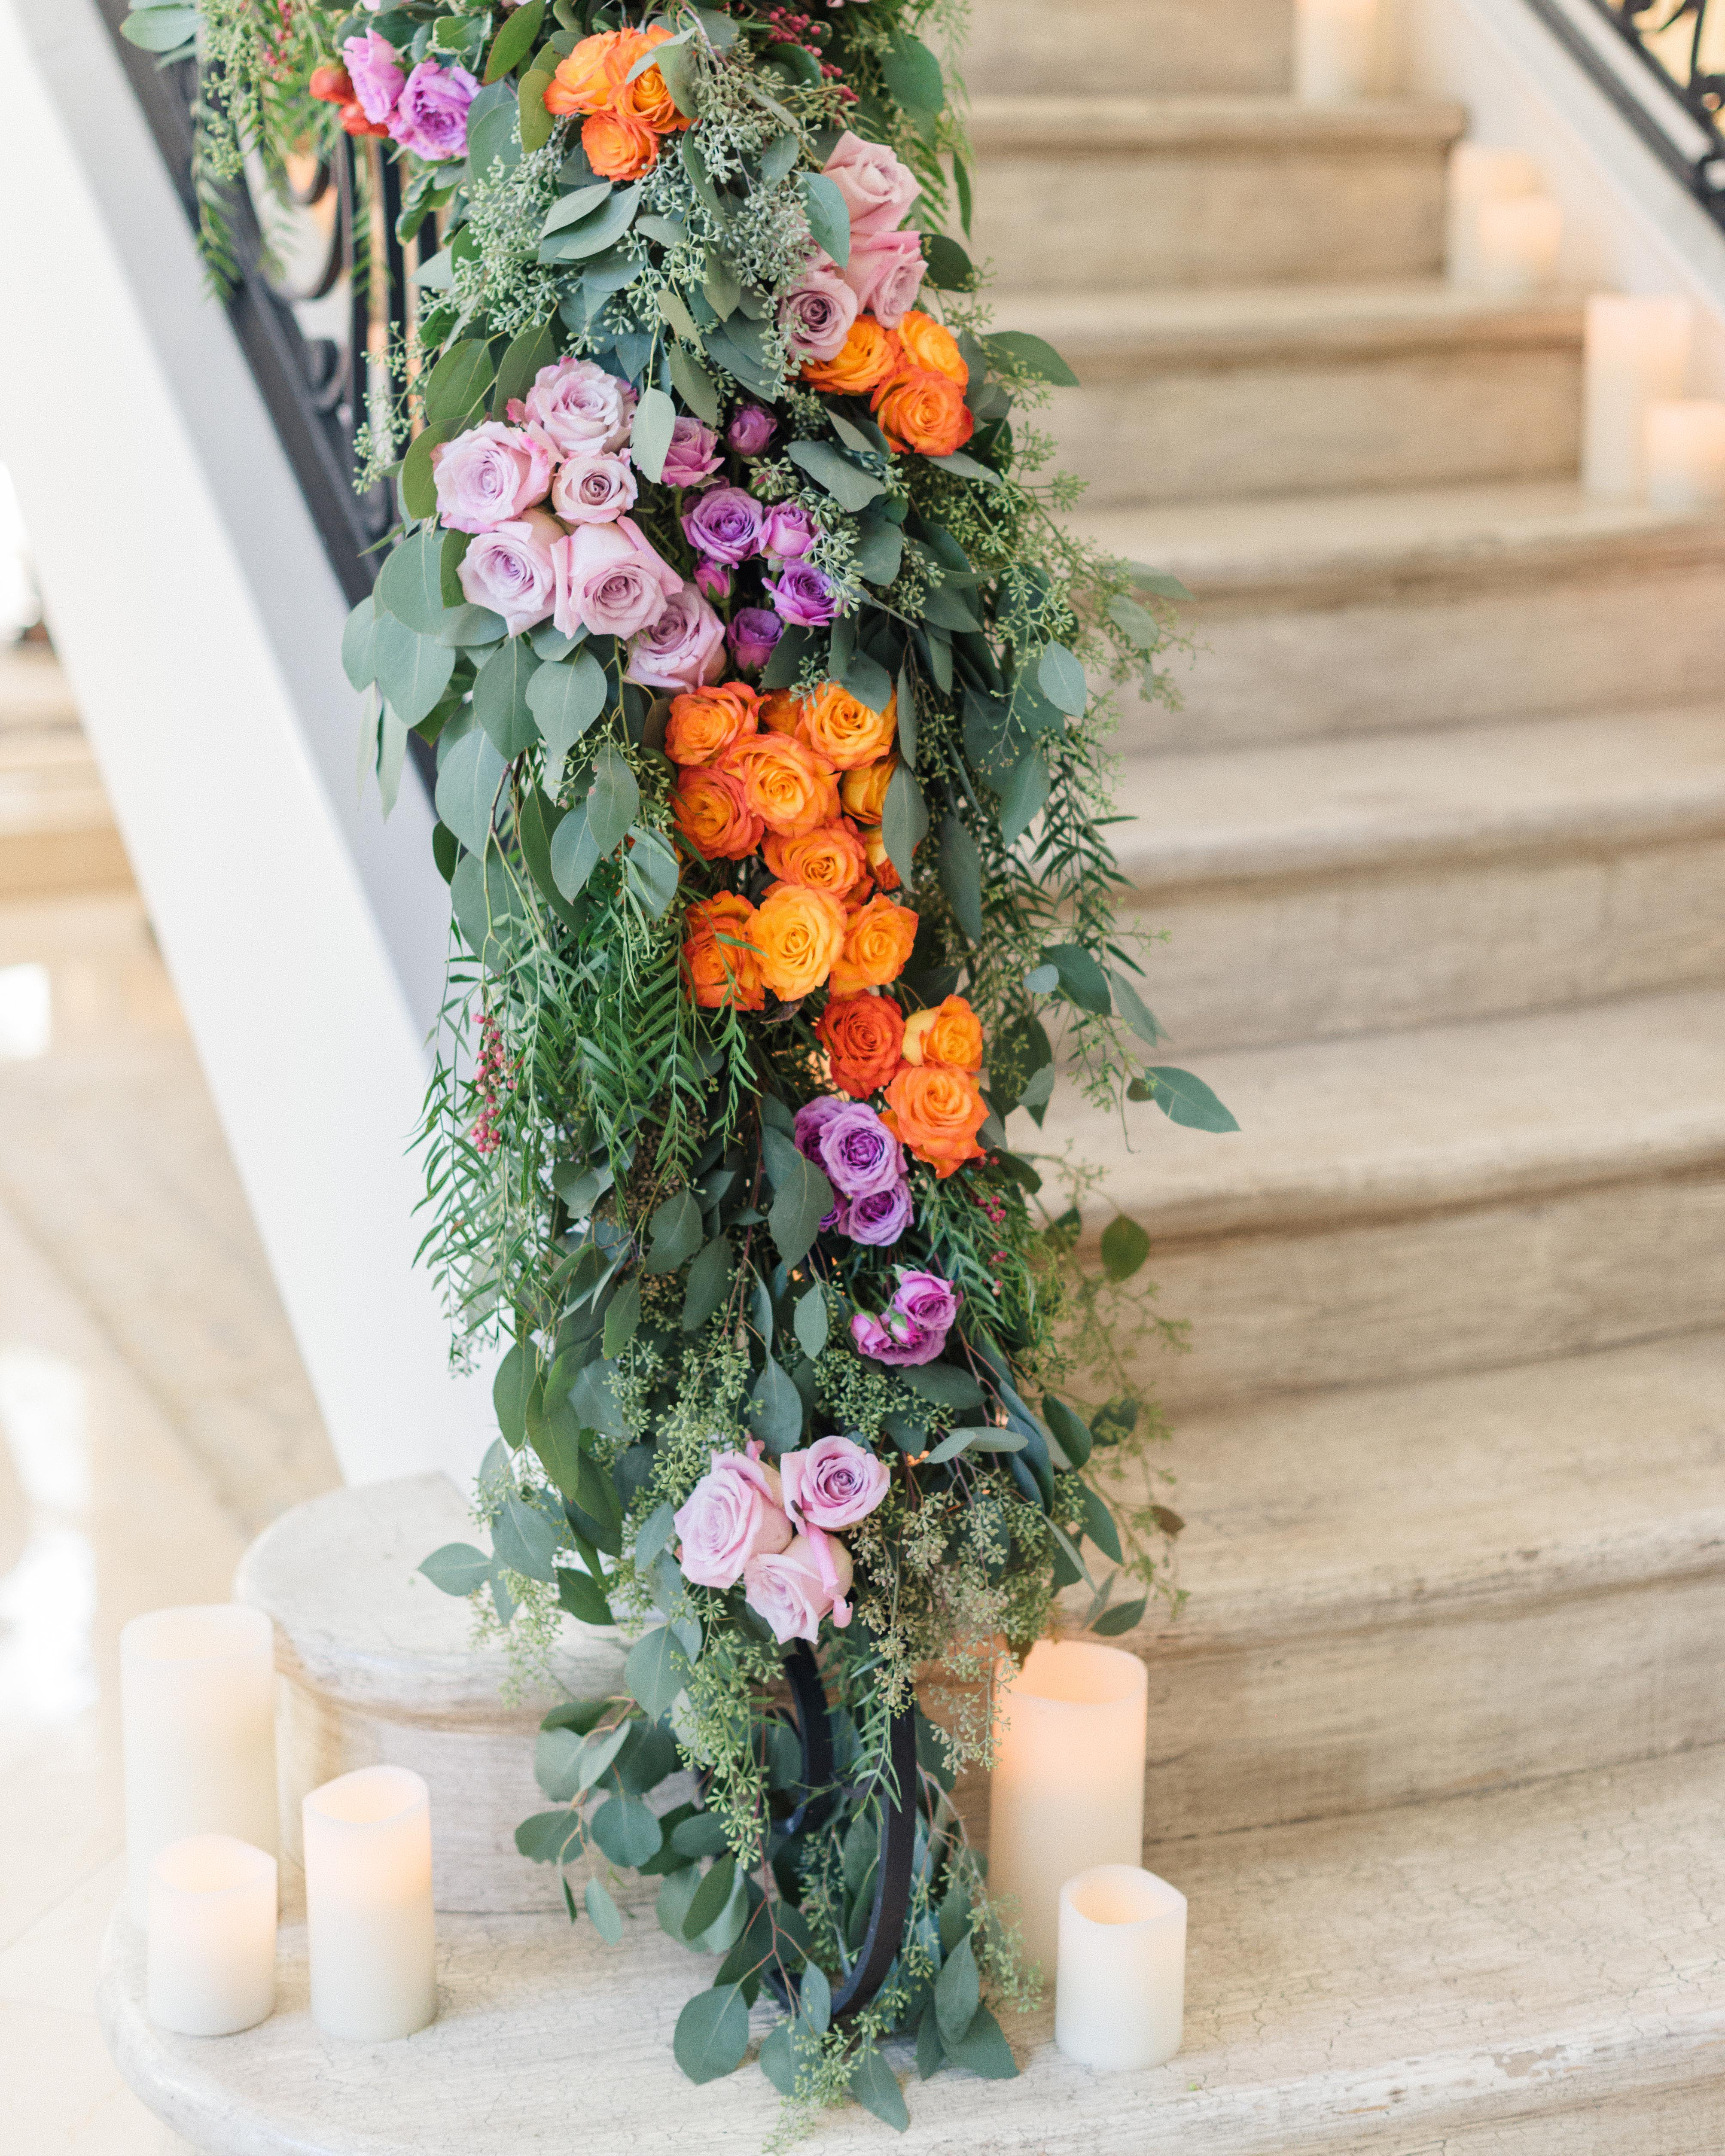 stair banister decor bright flowers with pillar candles